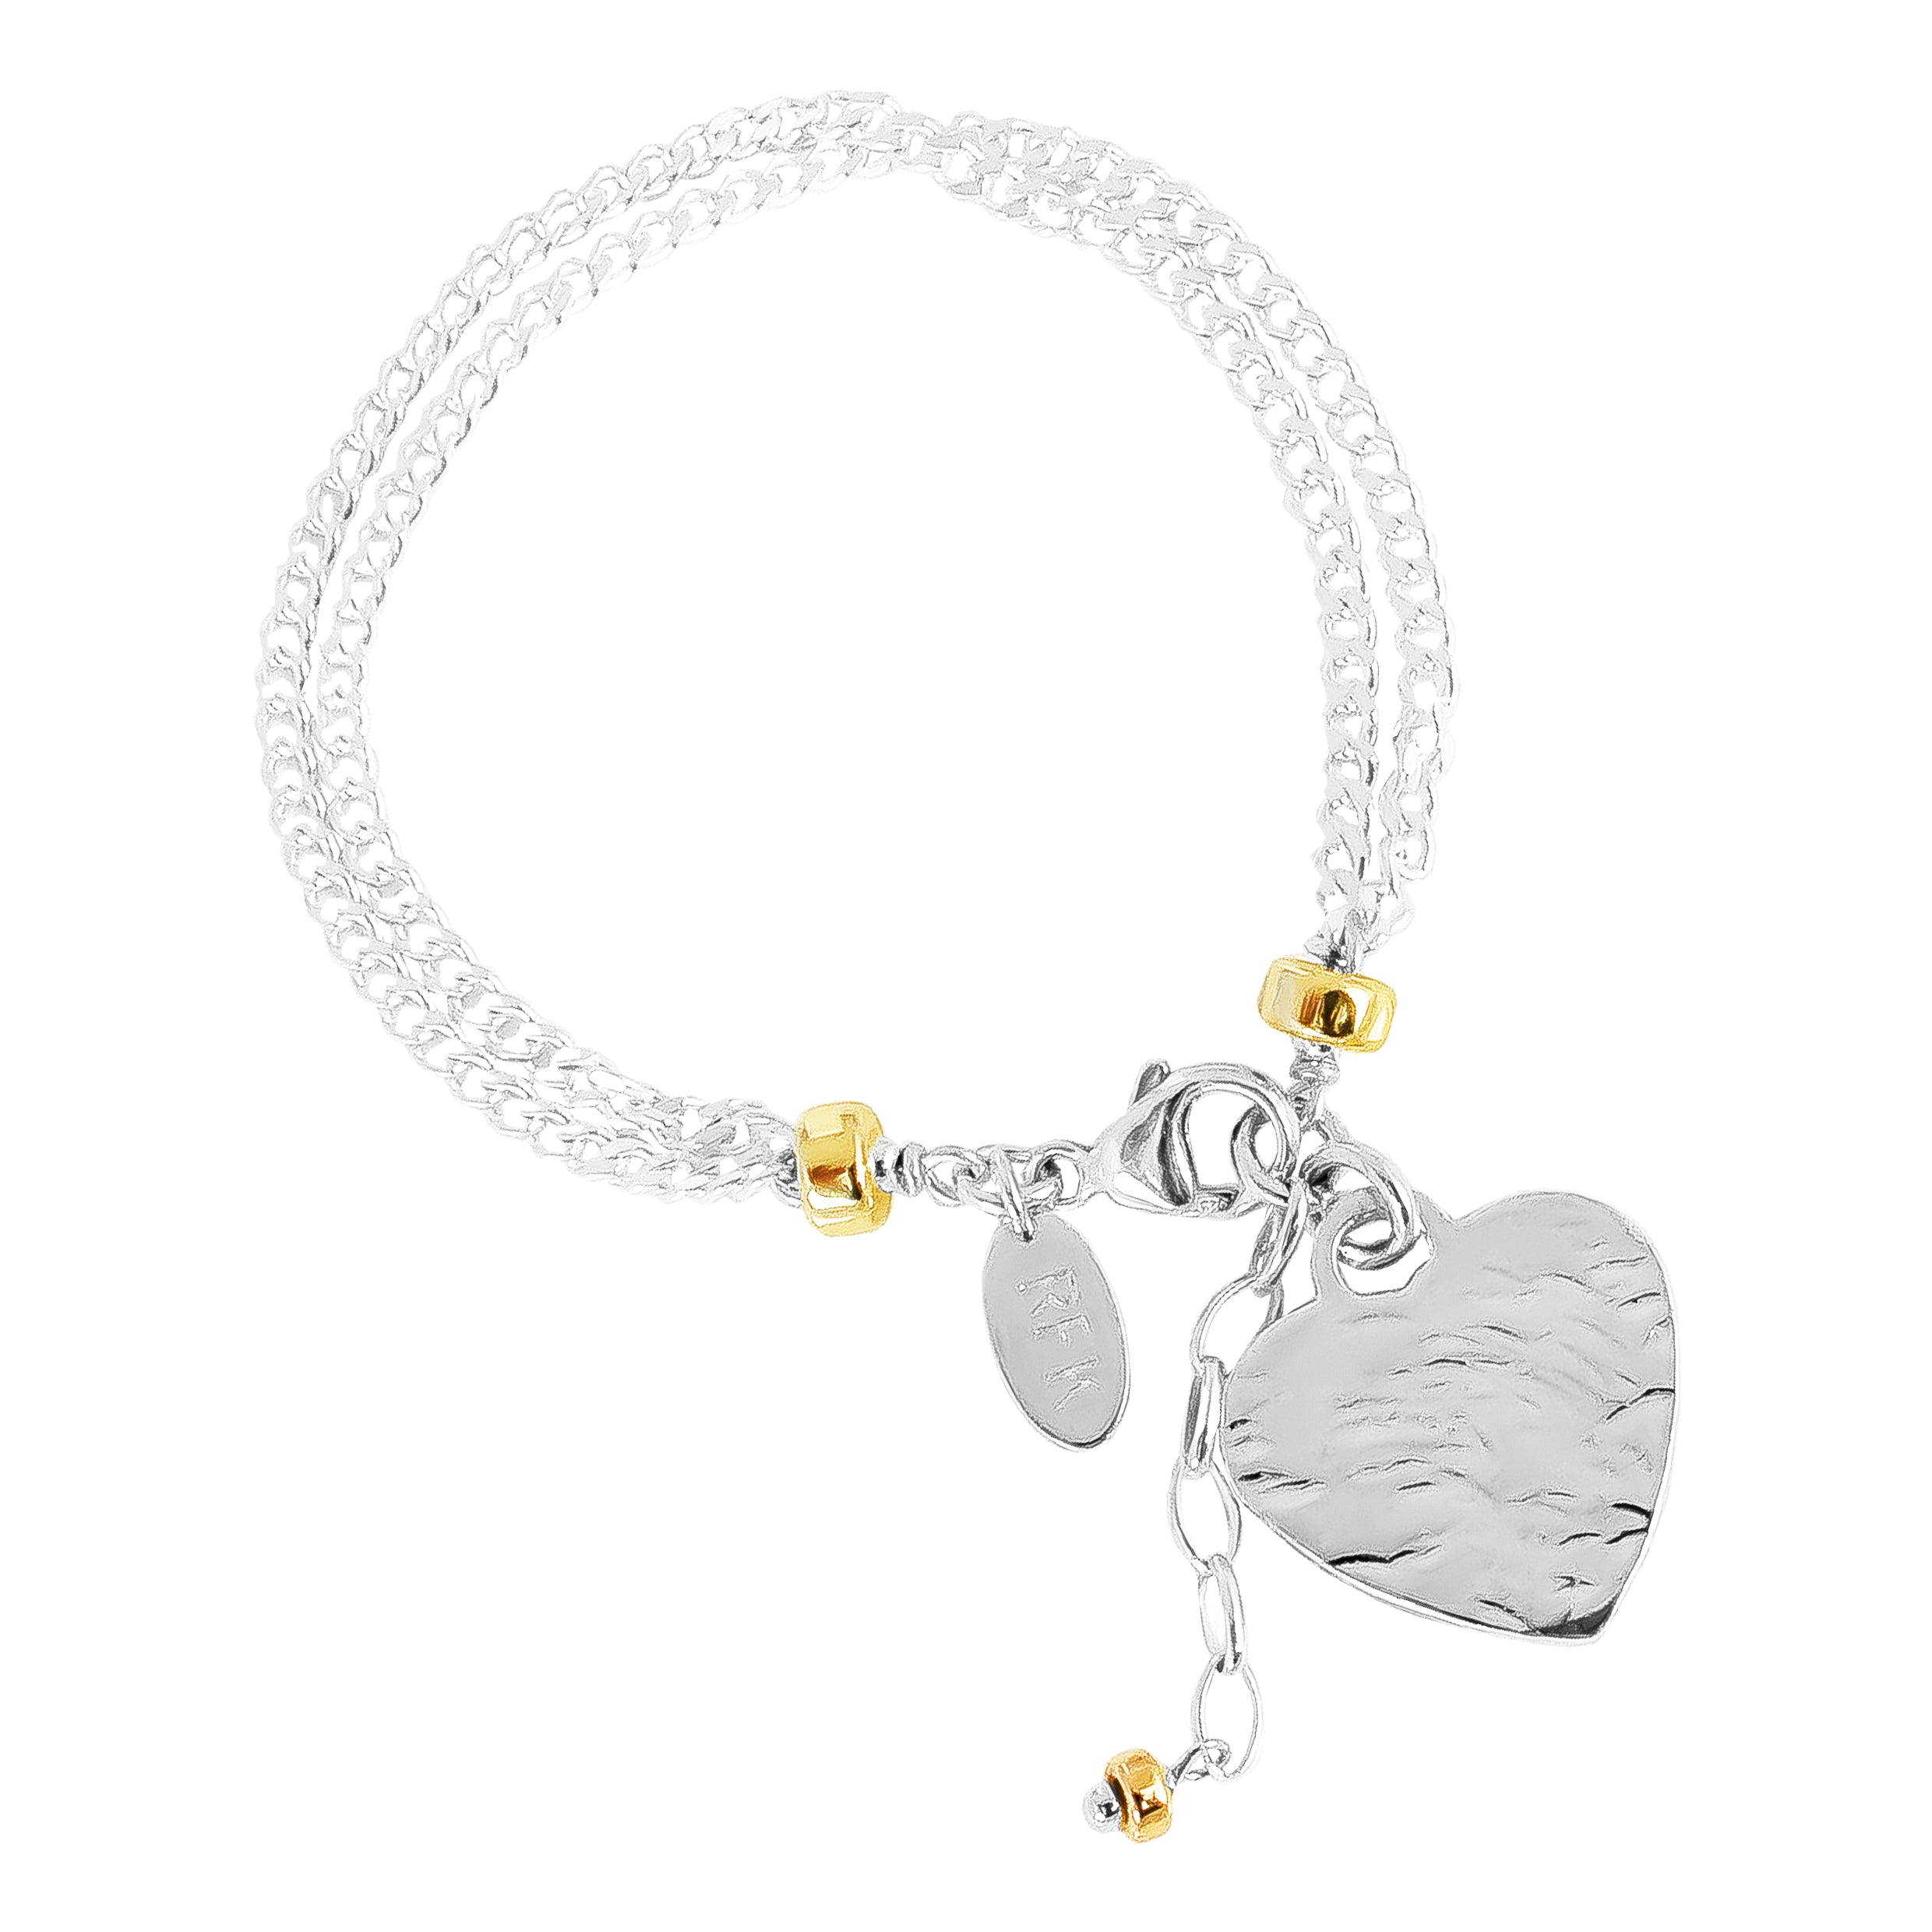 Emilie Double Chain Bracelet With Hammered Heart | Silver Heart And Gold Detail